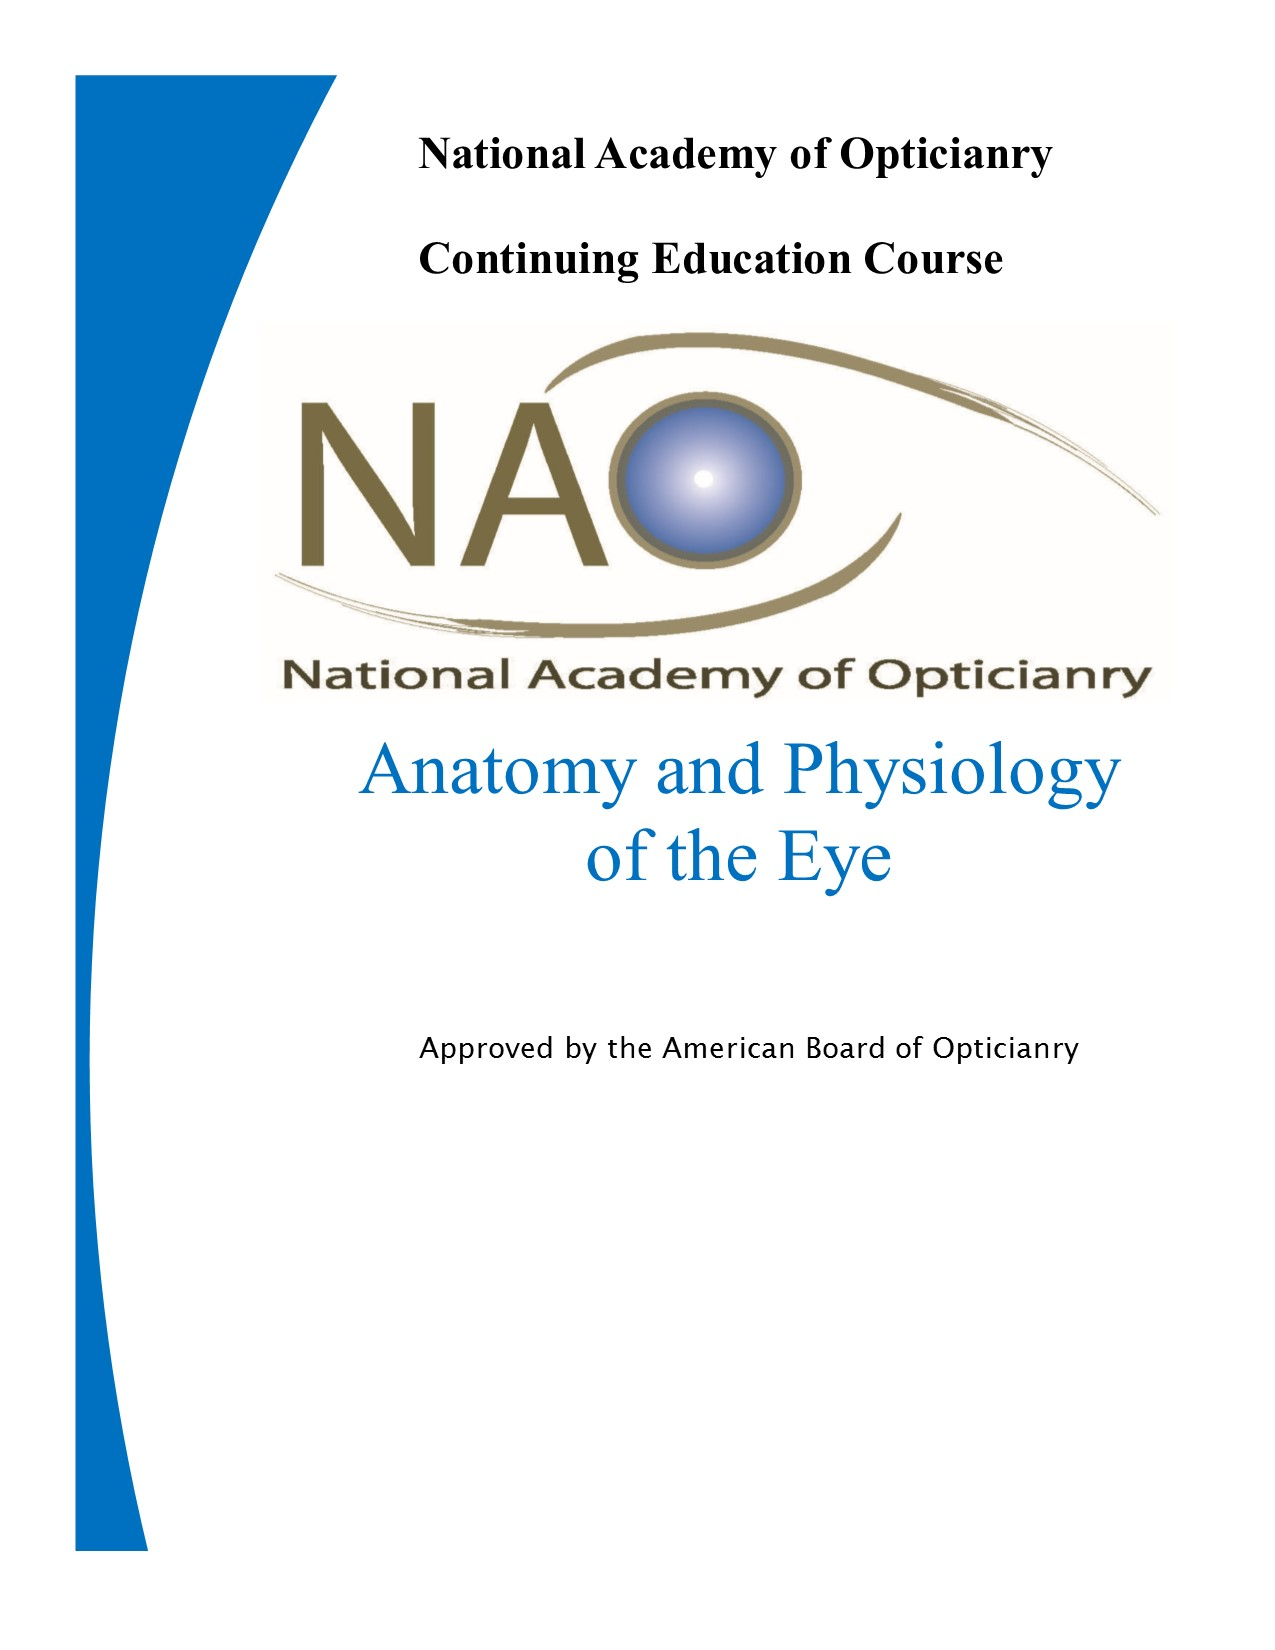 NAO | Anatomy and Physiology of the Eye